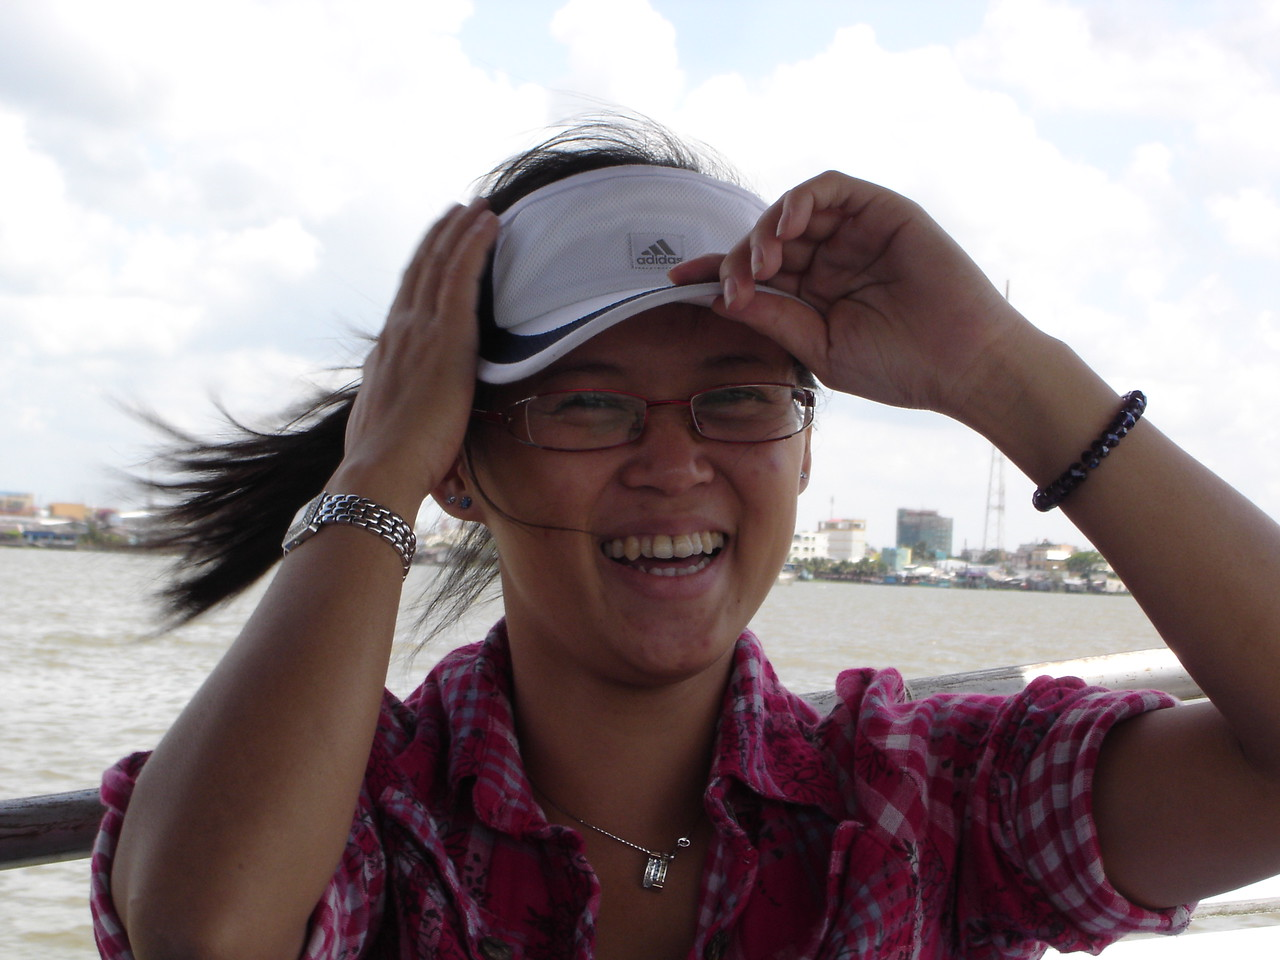 This is Nog, one of our Vietnamese tour guides in Saigon.